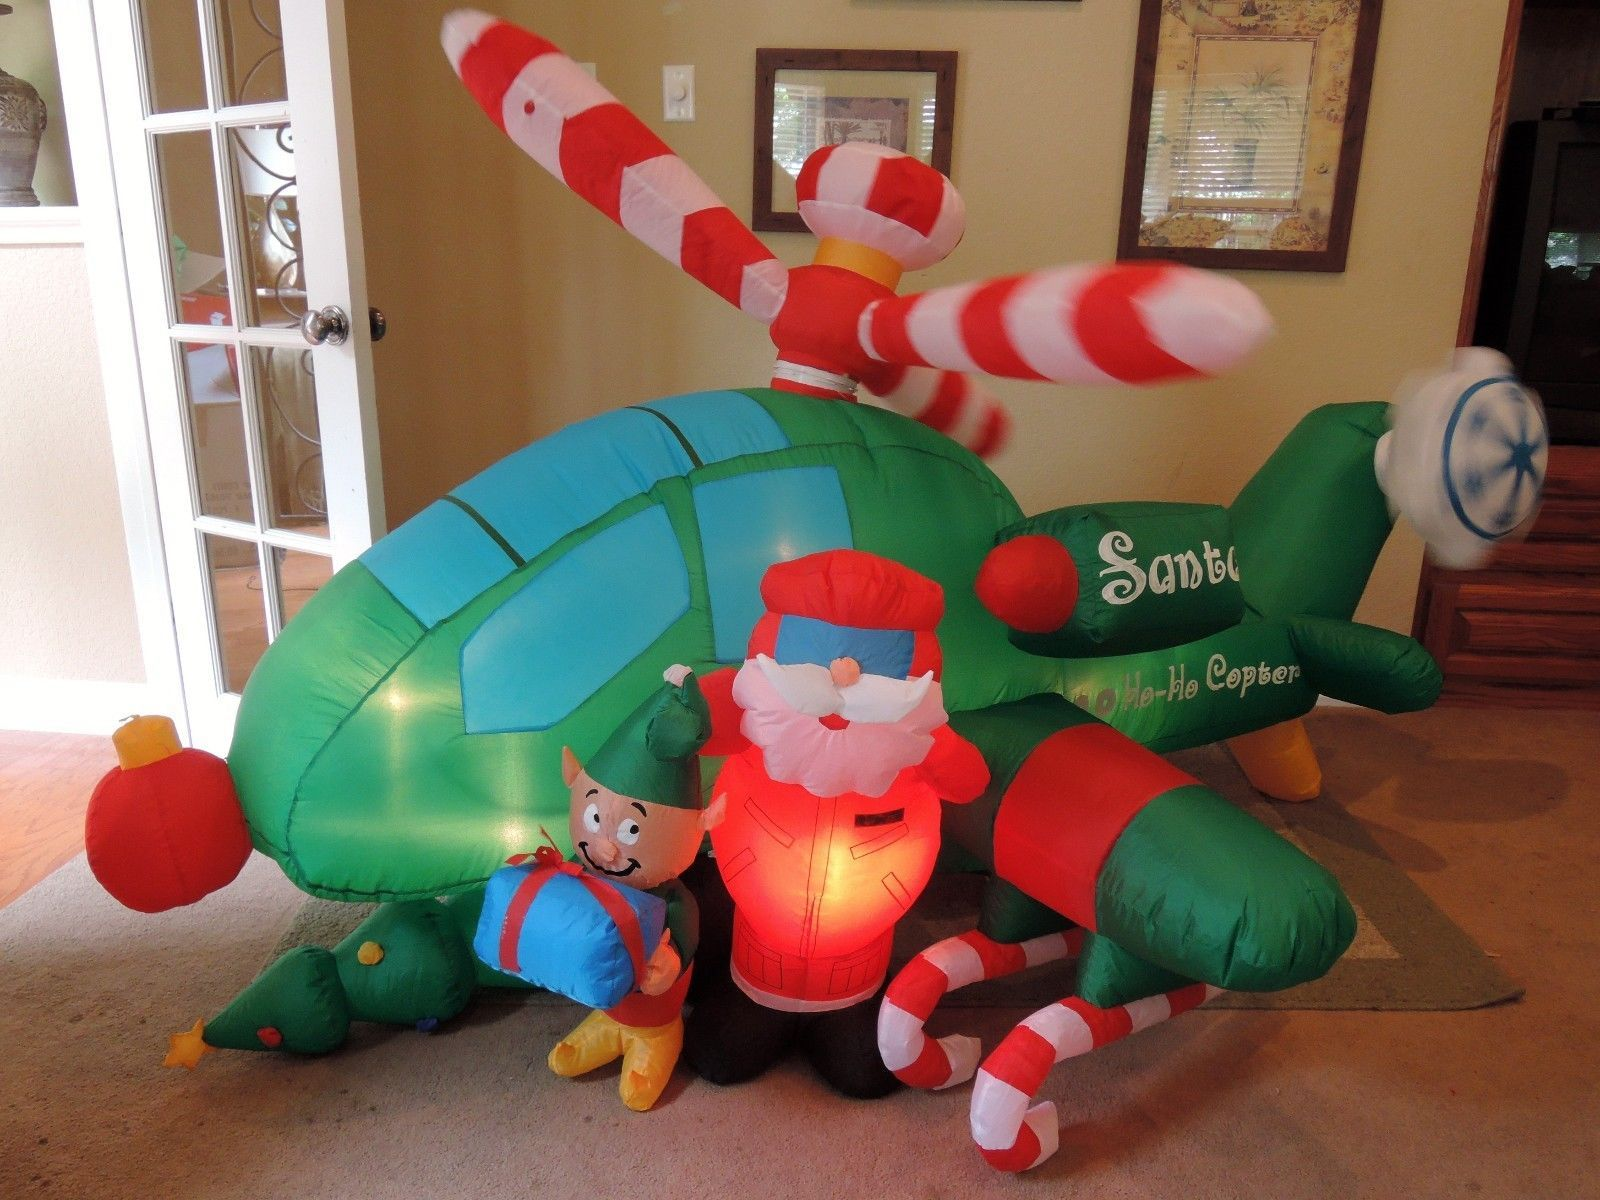 Santa Airblown Inflatable Helicopter Reindeer Led Lighted Christmas Yard Decor